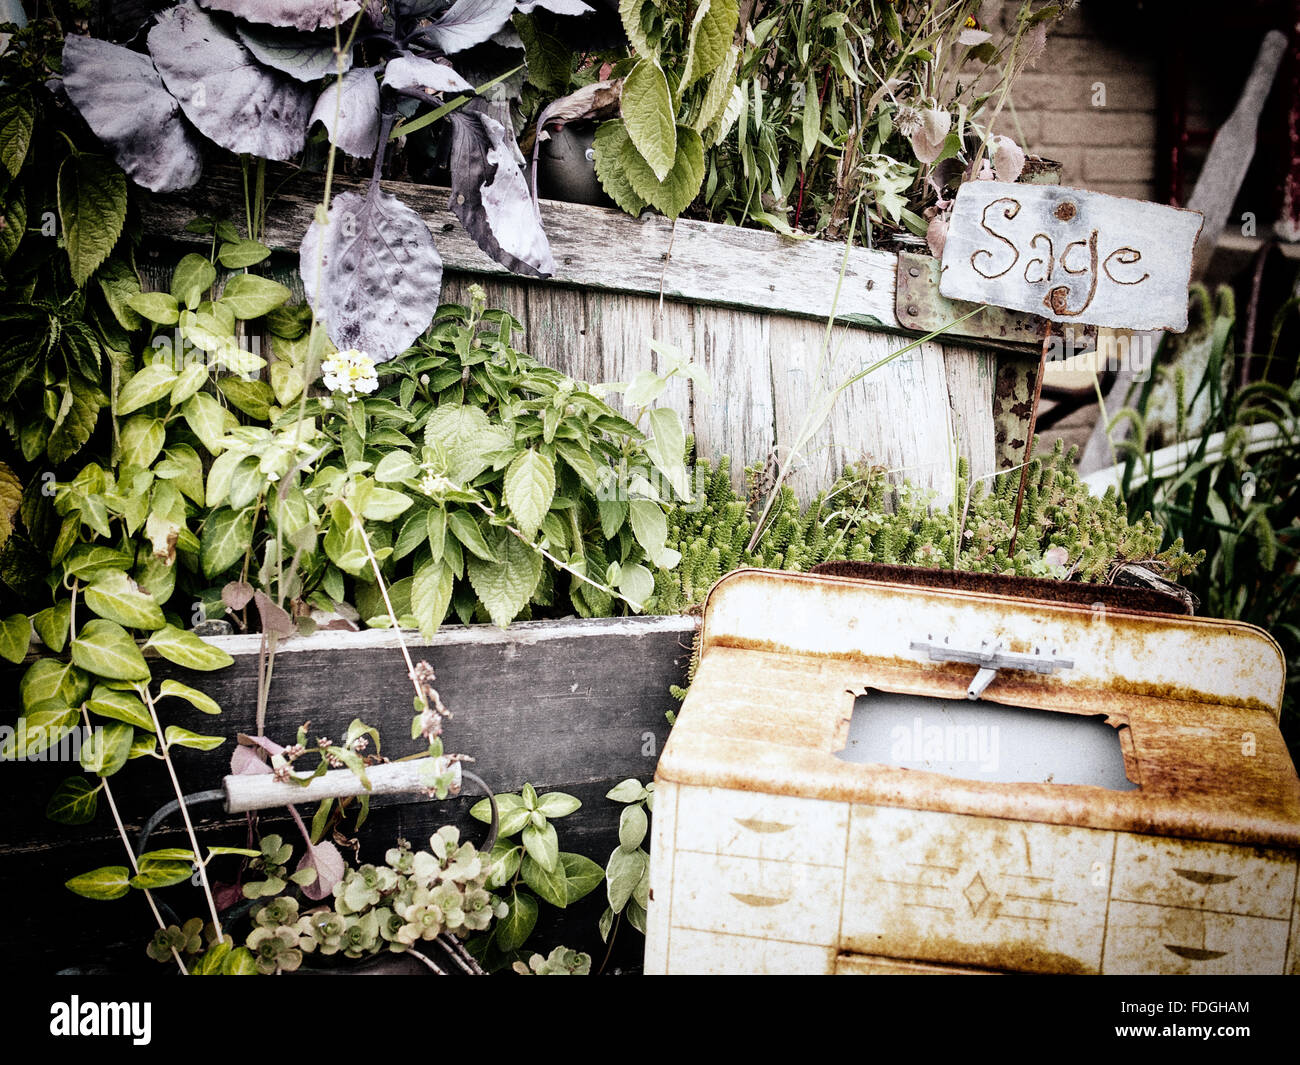 Chaotic urban garden with herbs and rusted junk - Stock Image